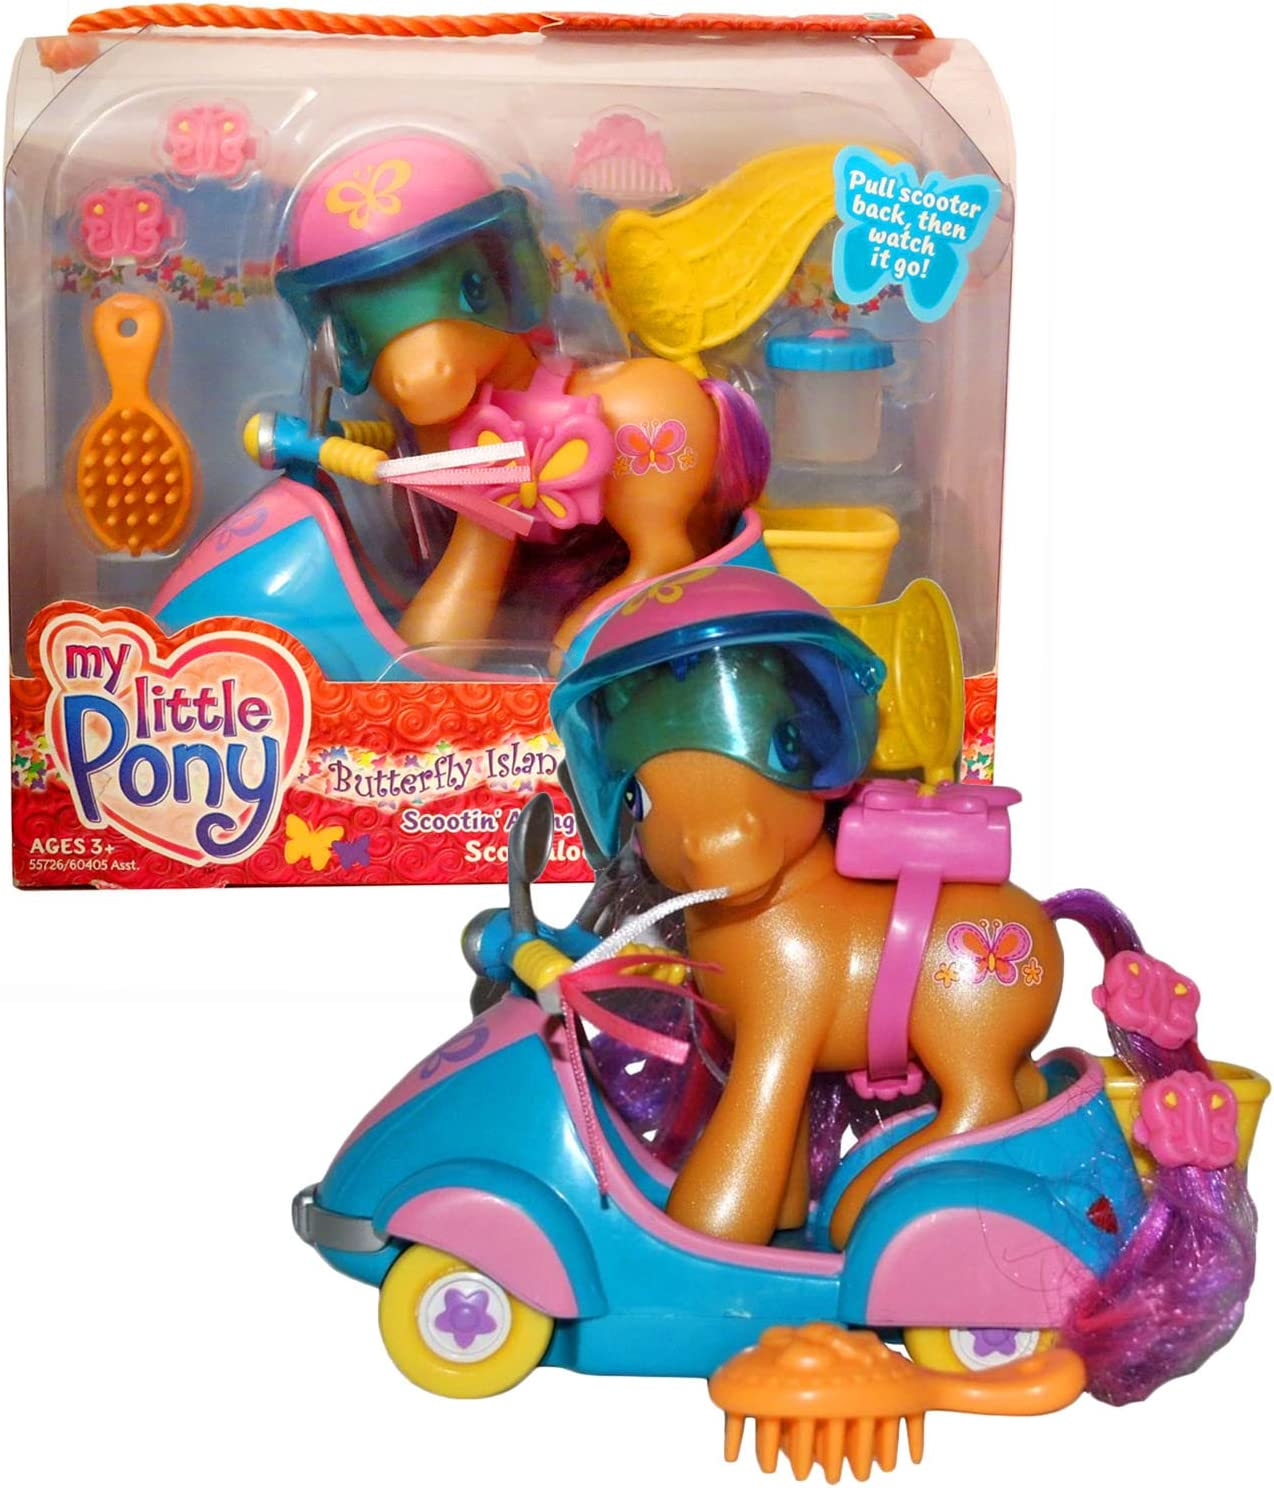 Amazon Com Year 2004 My Butterfly Island Little Pony Series 4 Inch Tall Figure Scootin Along With Scootaloo Plus Helmet Container Hairpin And Hairbrush Toys Games Scootaloo is a major supporting character in friendship is magic and one of the cutie mark crusaders. butterfly island little pony series